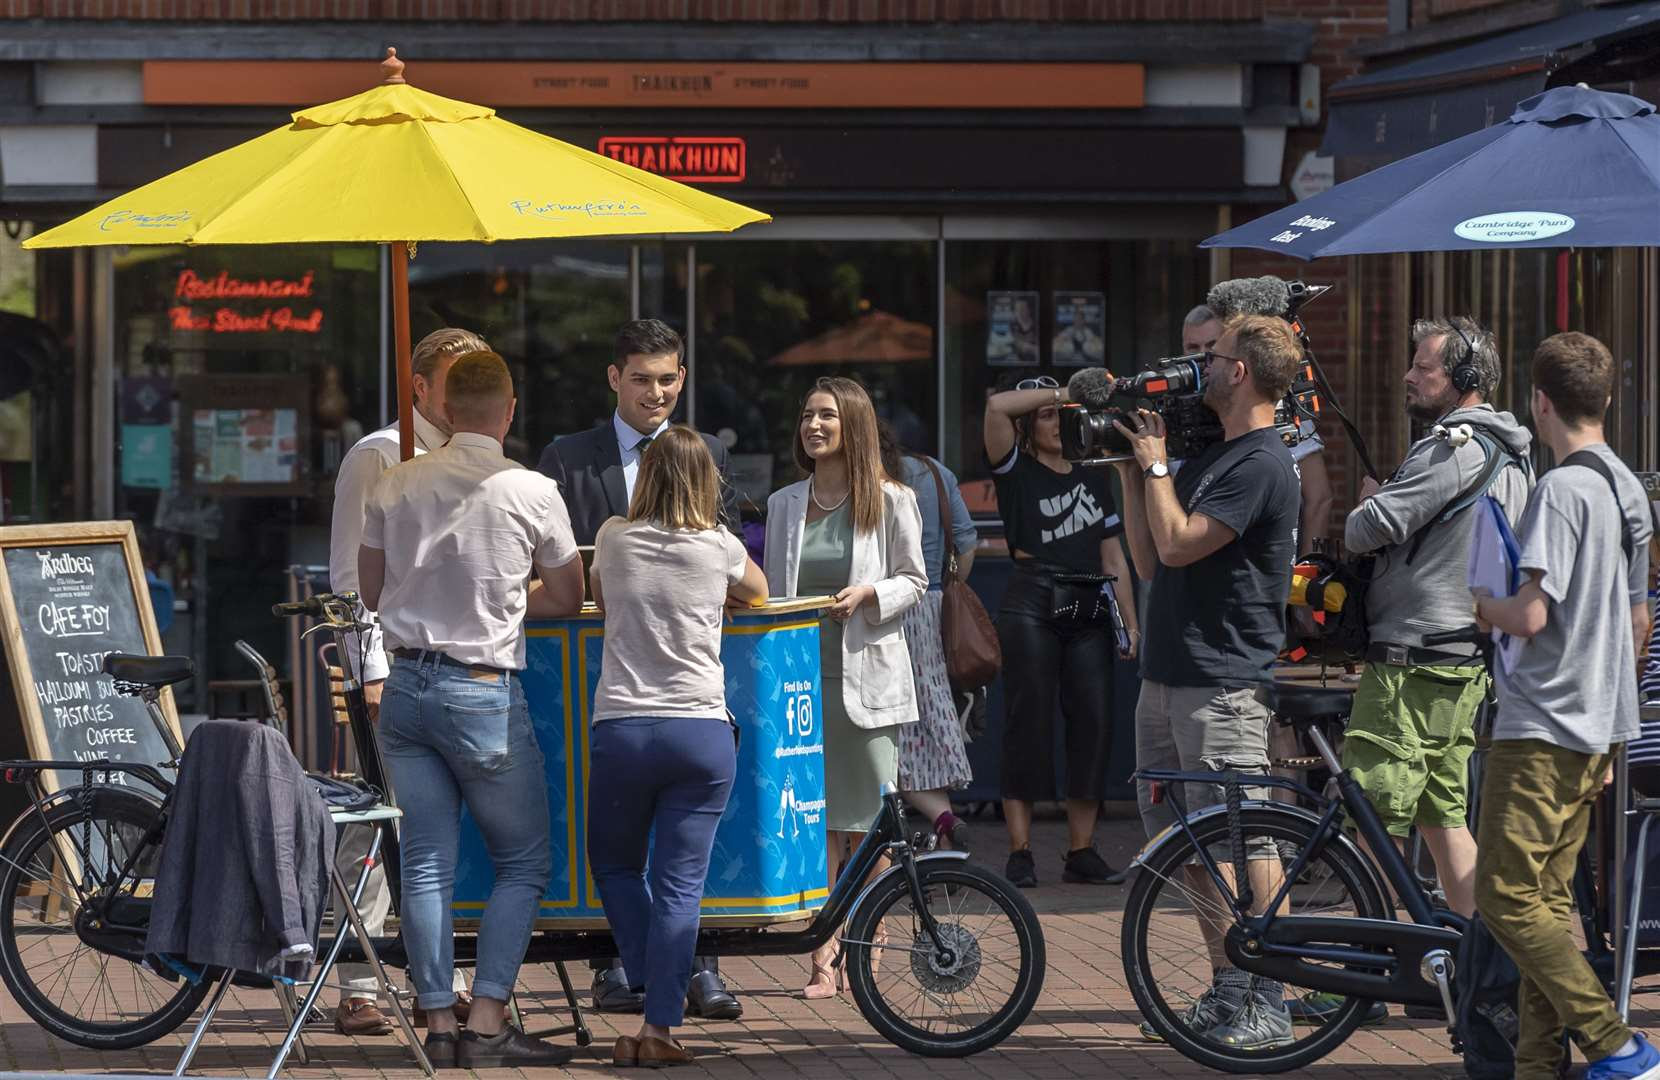 The Apprentice 2019 films in Quayside, Cambridge. Picture: Keith Heppell